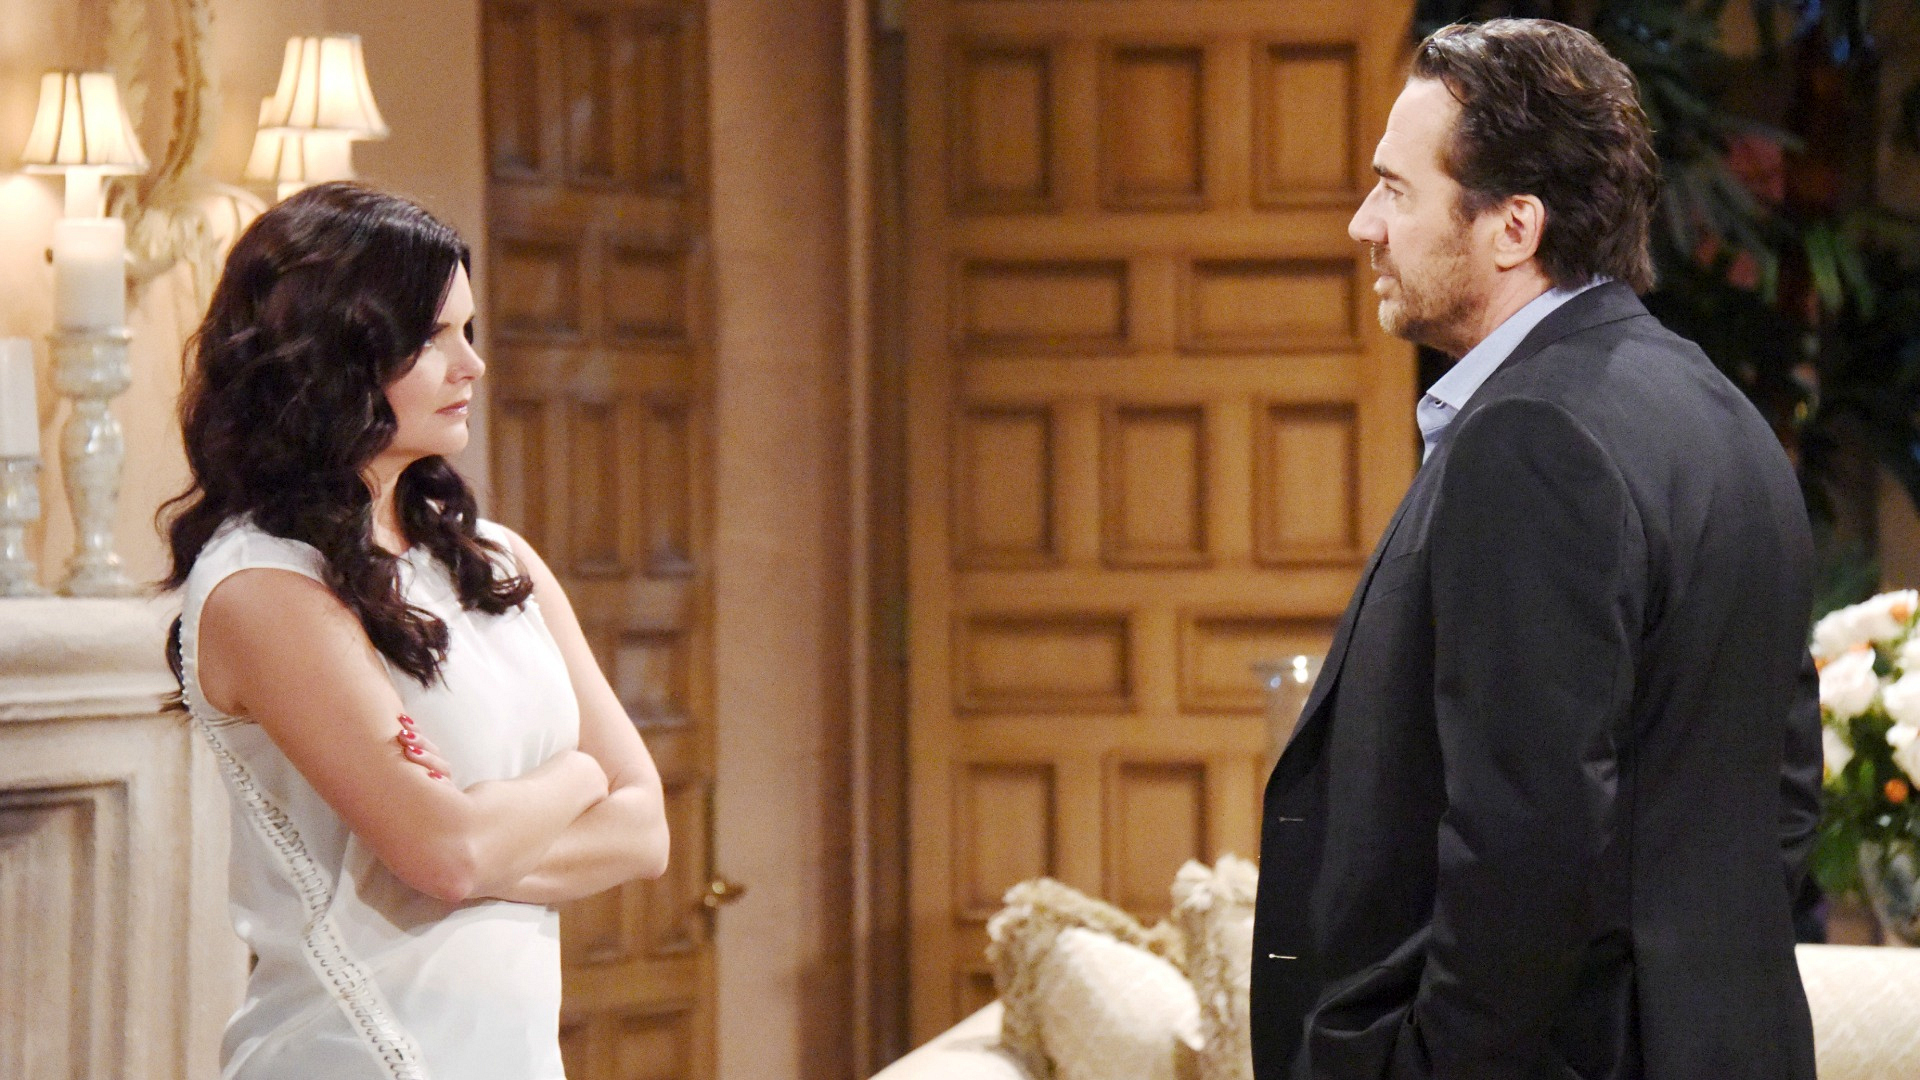 Ridge quickly catches onto Katie's scheme to get back at Quinn for her previous misdeeds.